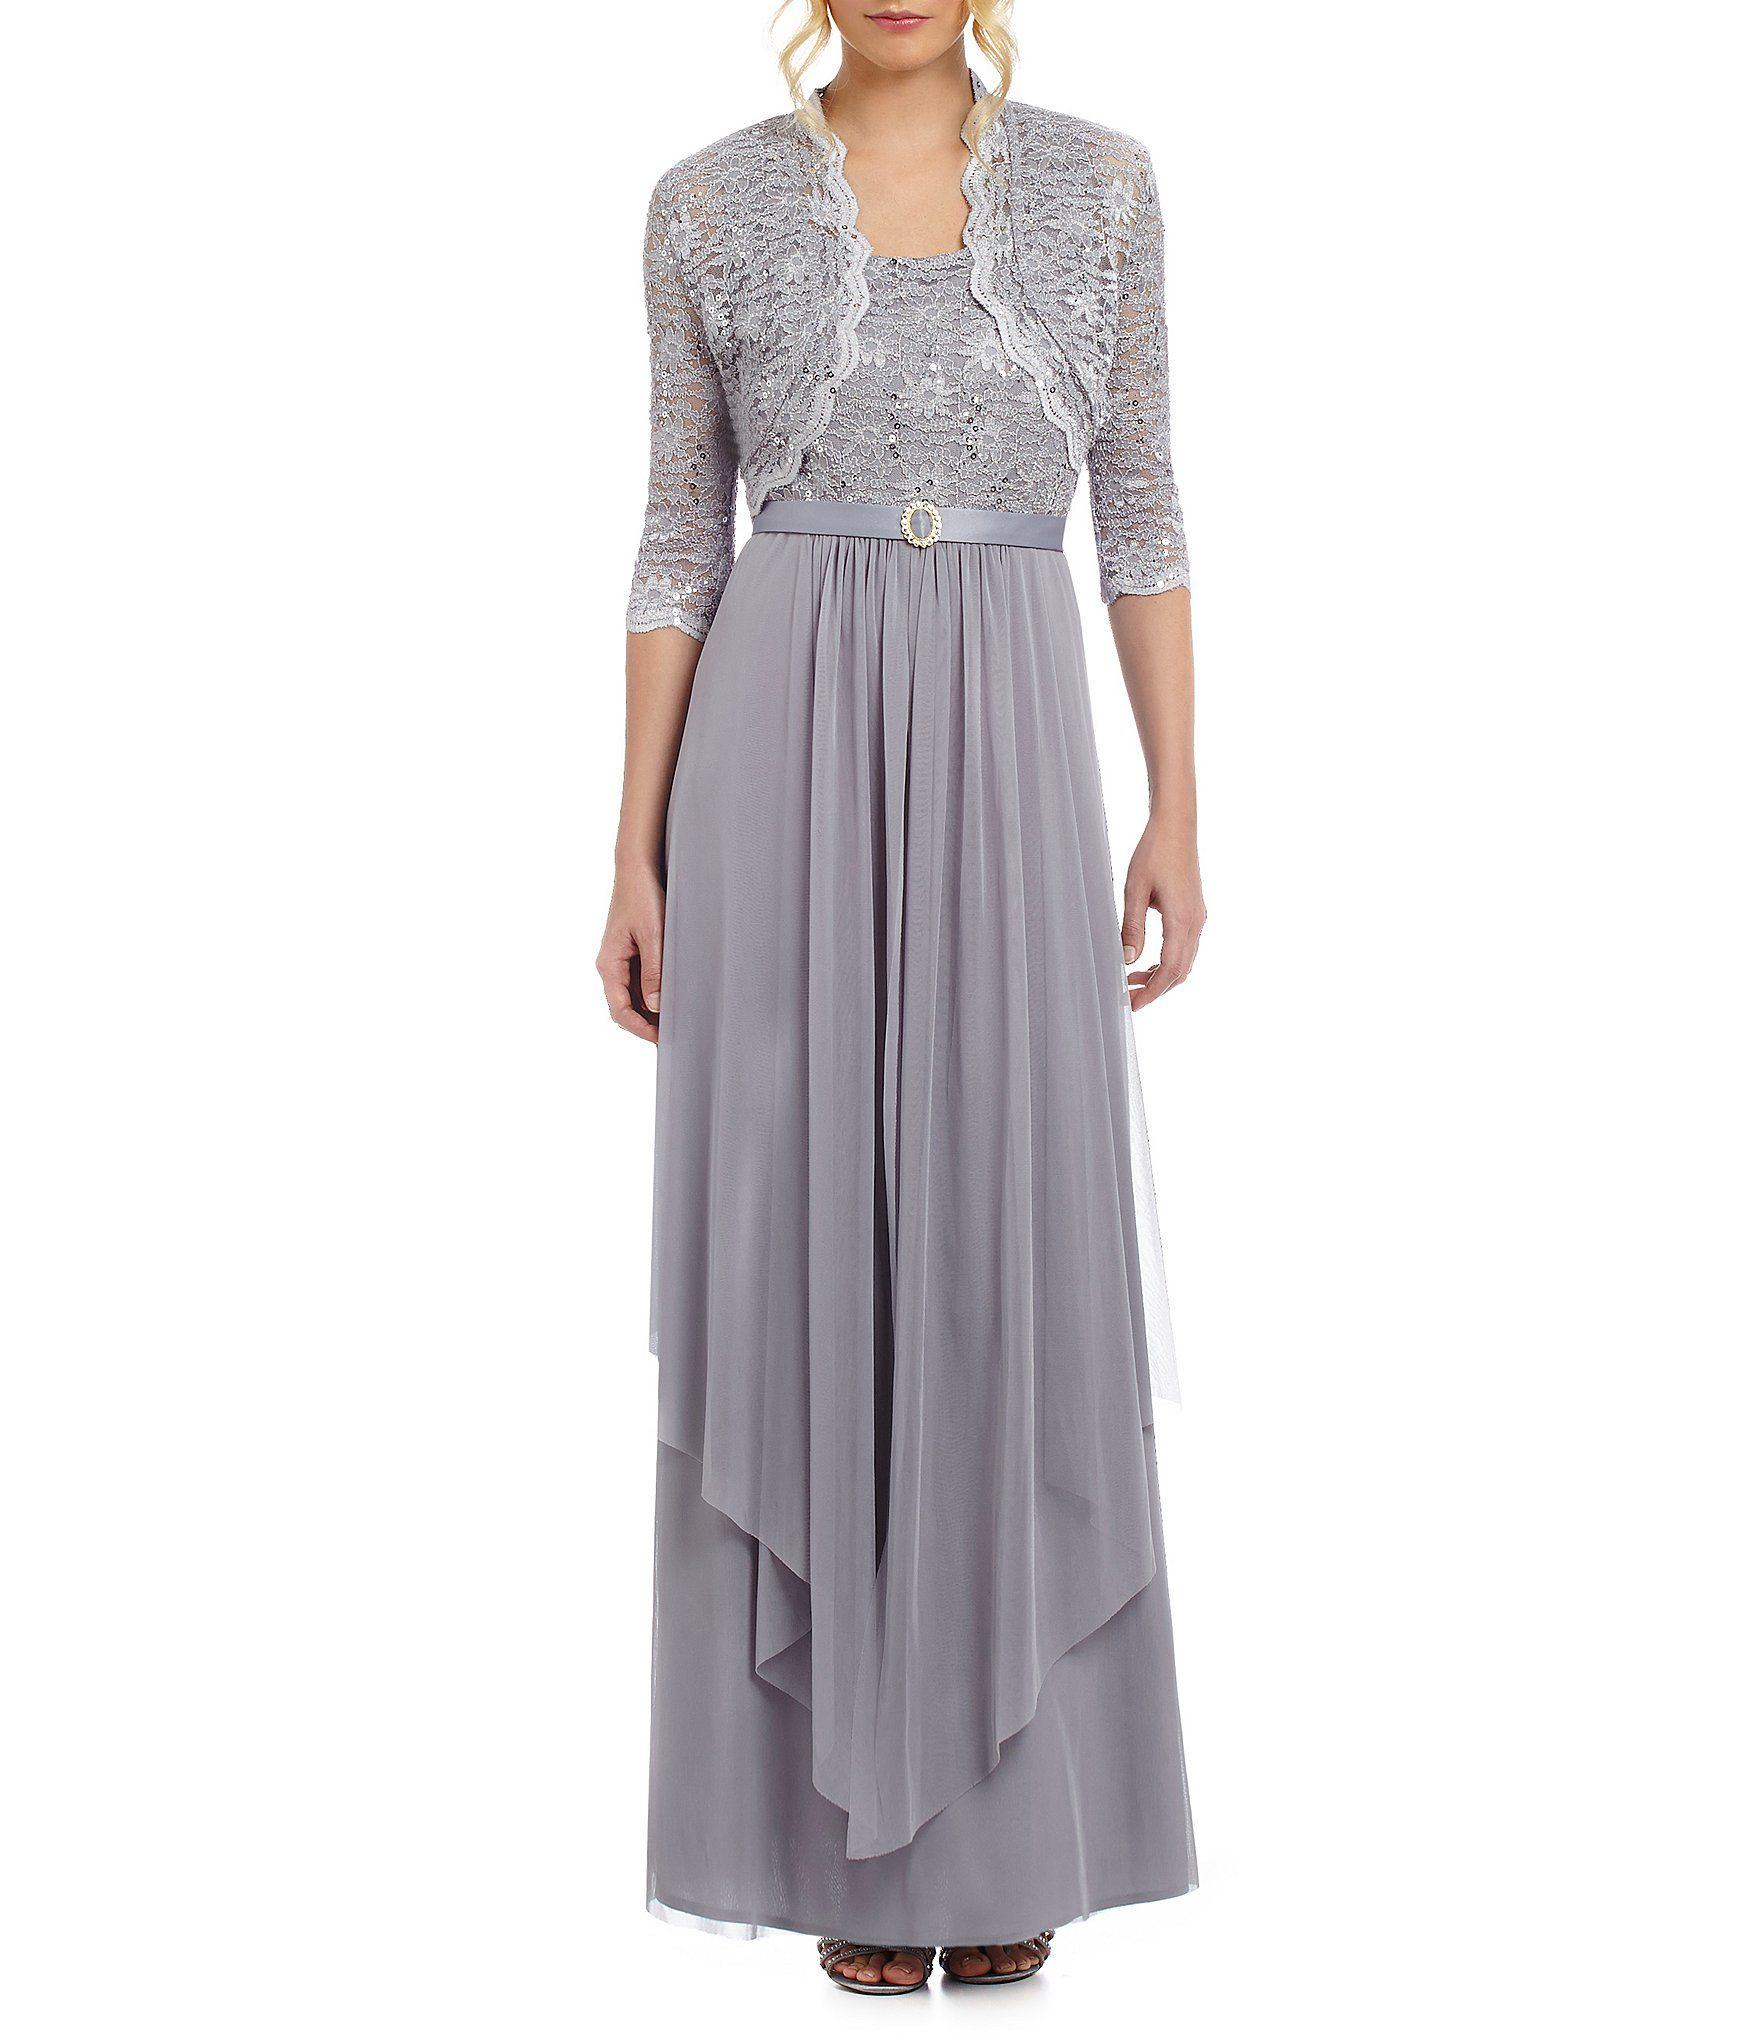 Shop for r u m richards sequined lace u chiffon jacket dress at